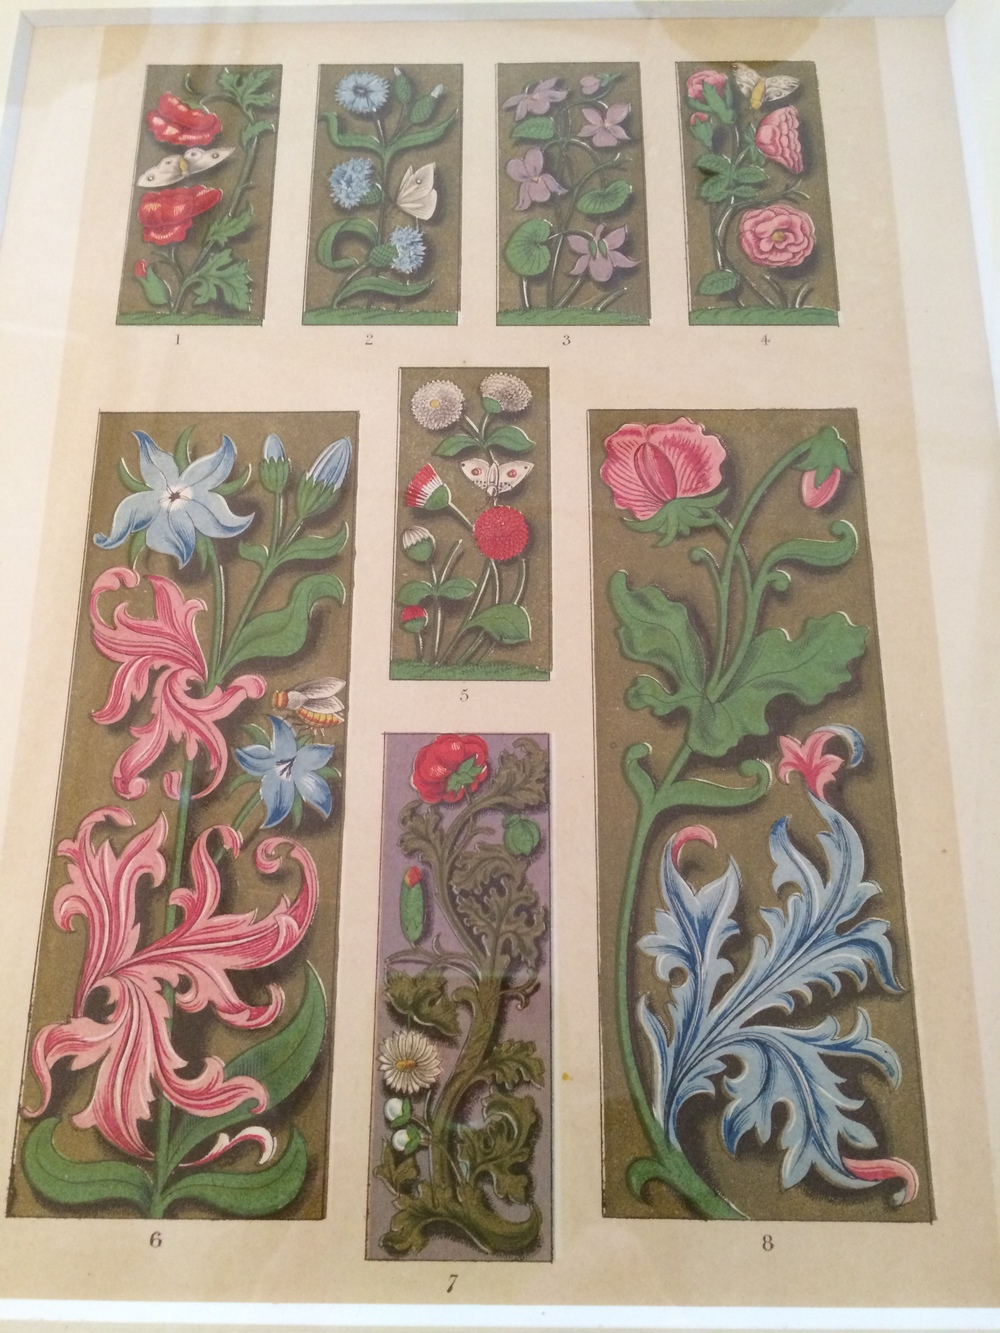 Flowers and Bugs, antique prints